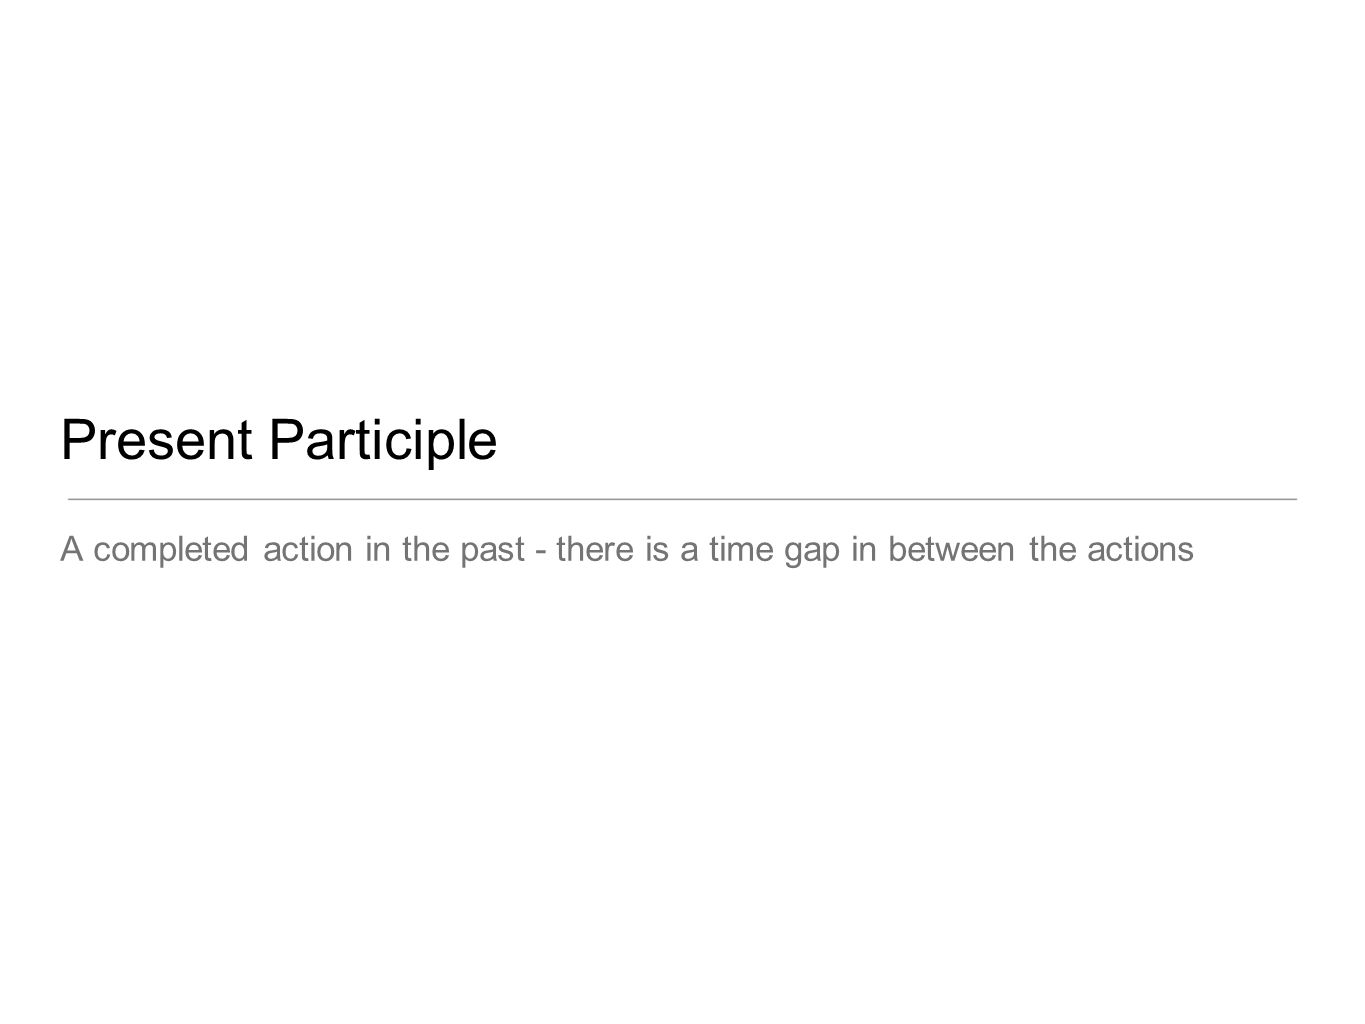 Present Participle A completed action in the past - there is a time gap in between the actions